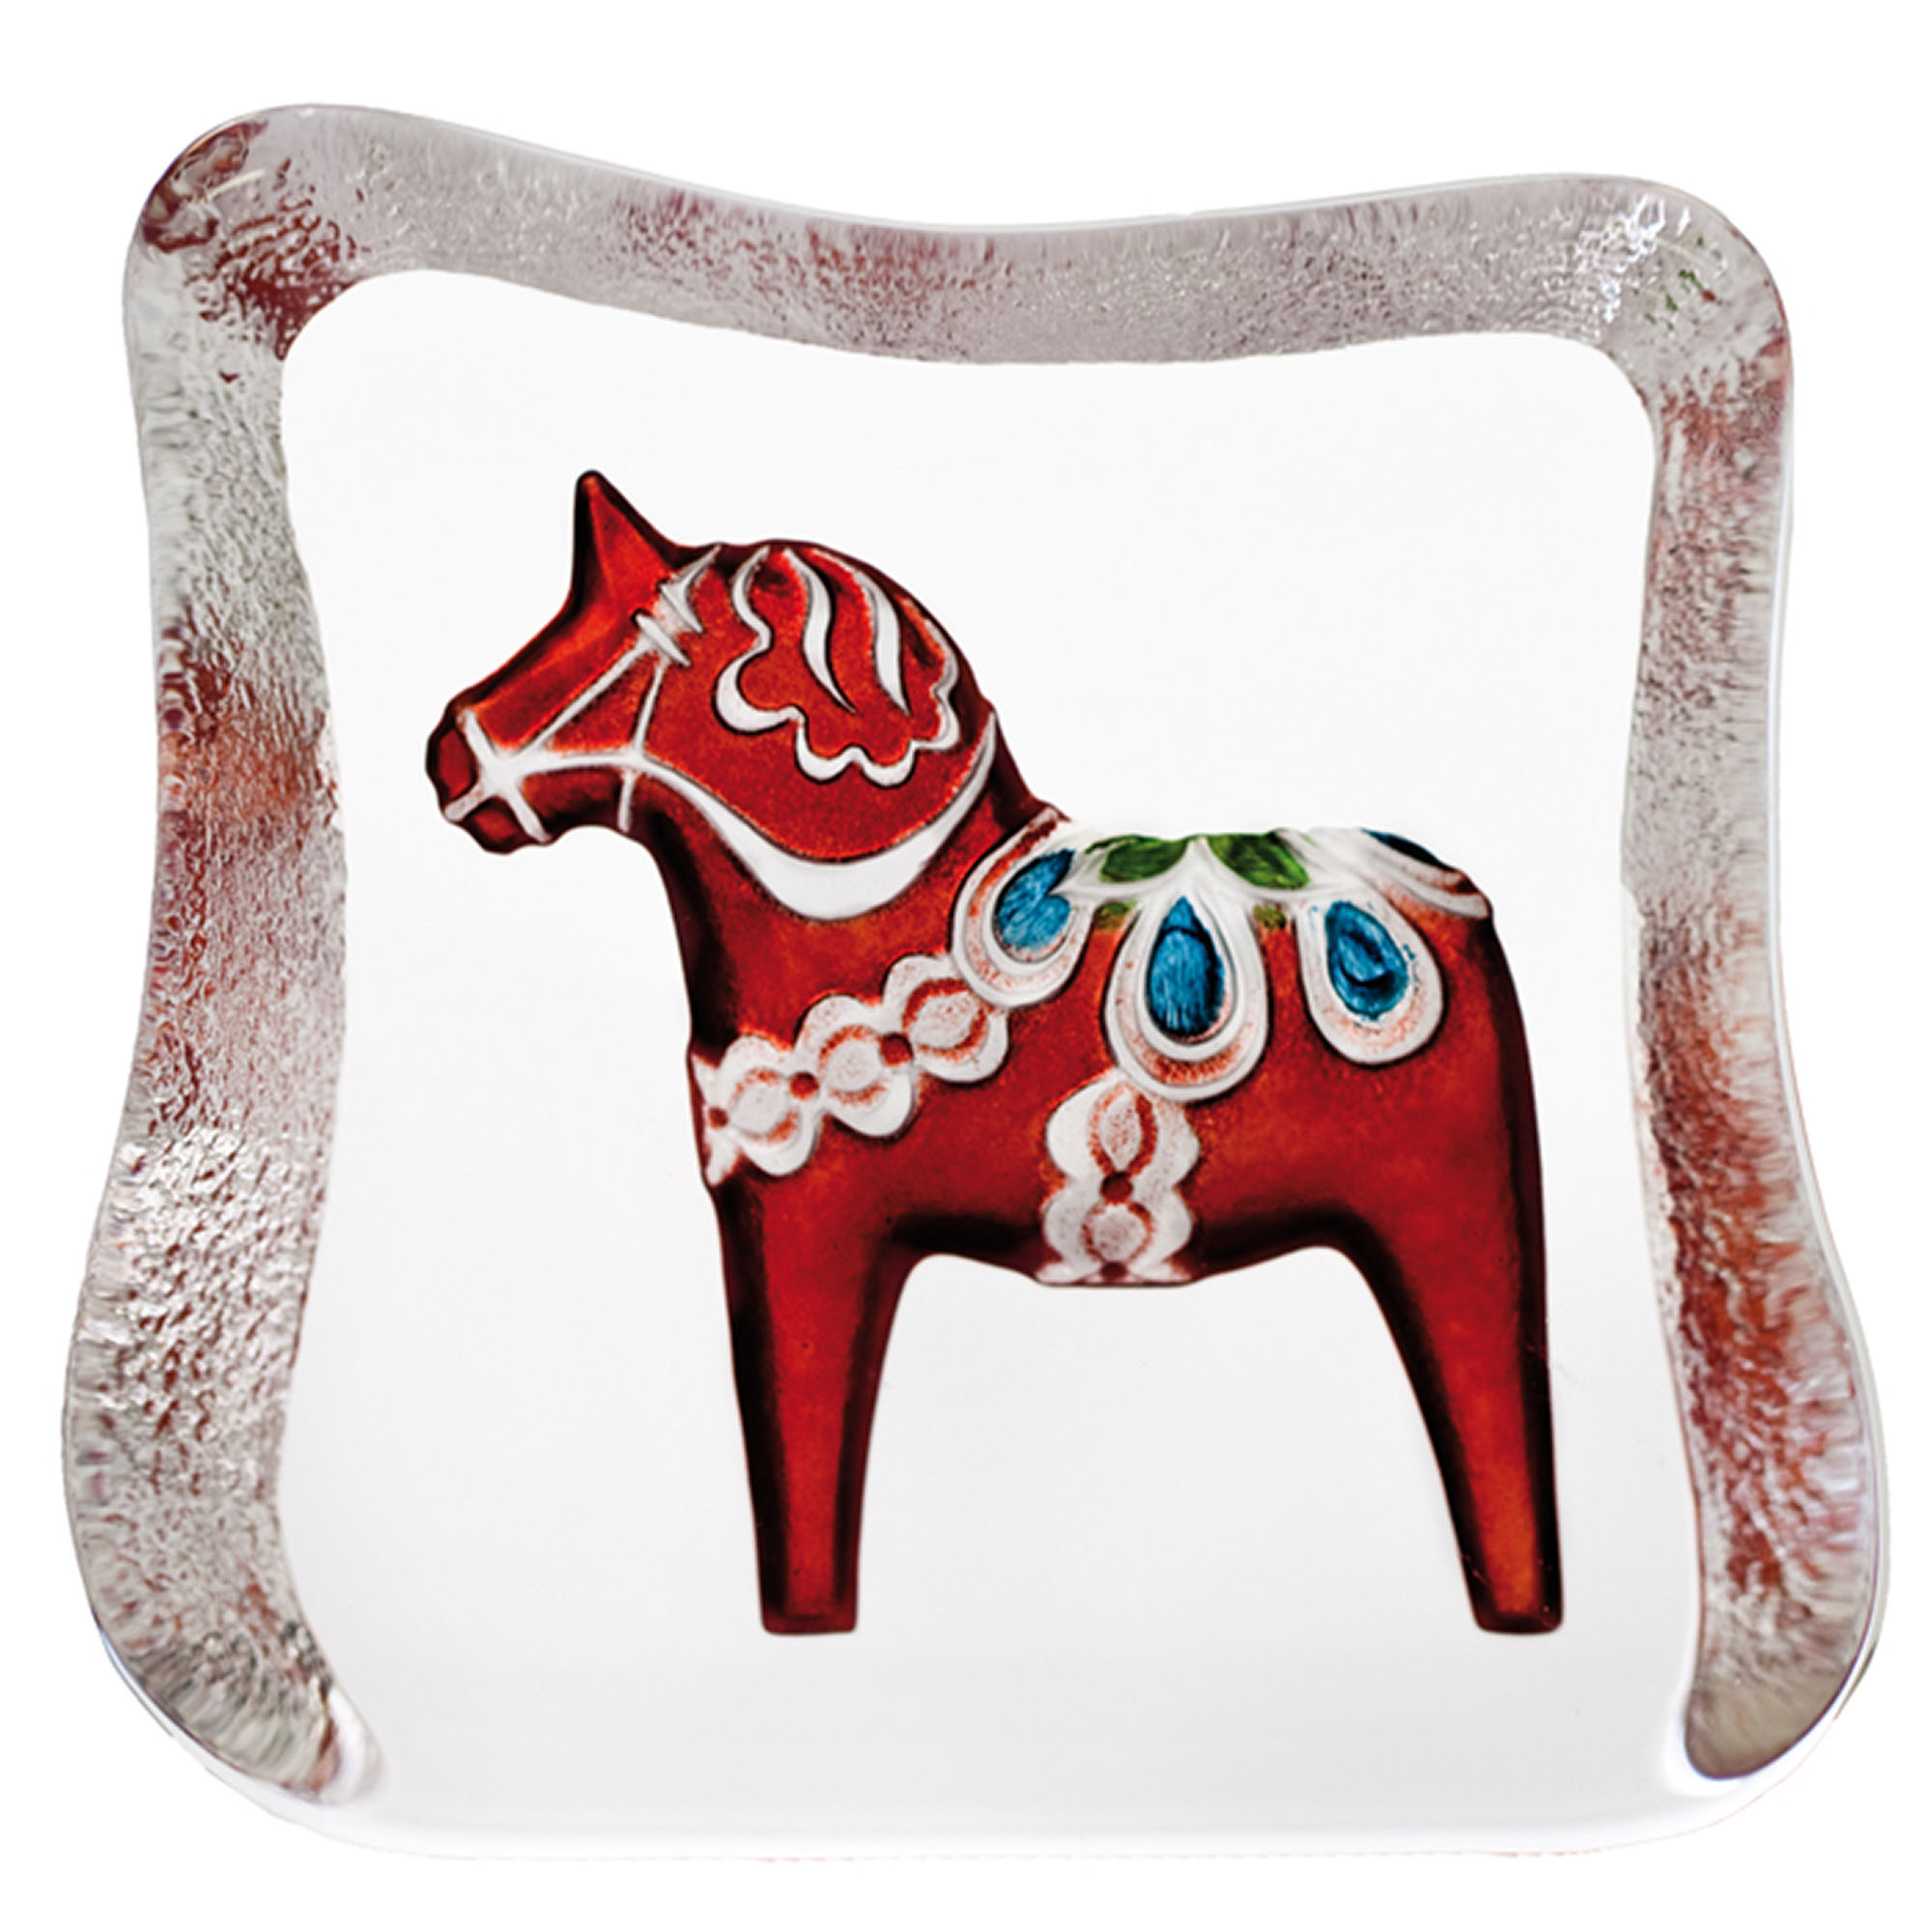 The Dalicarlian horse is a traditional symbol of Sweden. The Dalicarlian horse has its origin in the Swedish province of Dalarna and was first made as a toy for children in the 17th century. Brand: Mats Jonasson Målerås Data: Size: 95 x 110mm Designer: Robert Ljubez